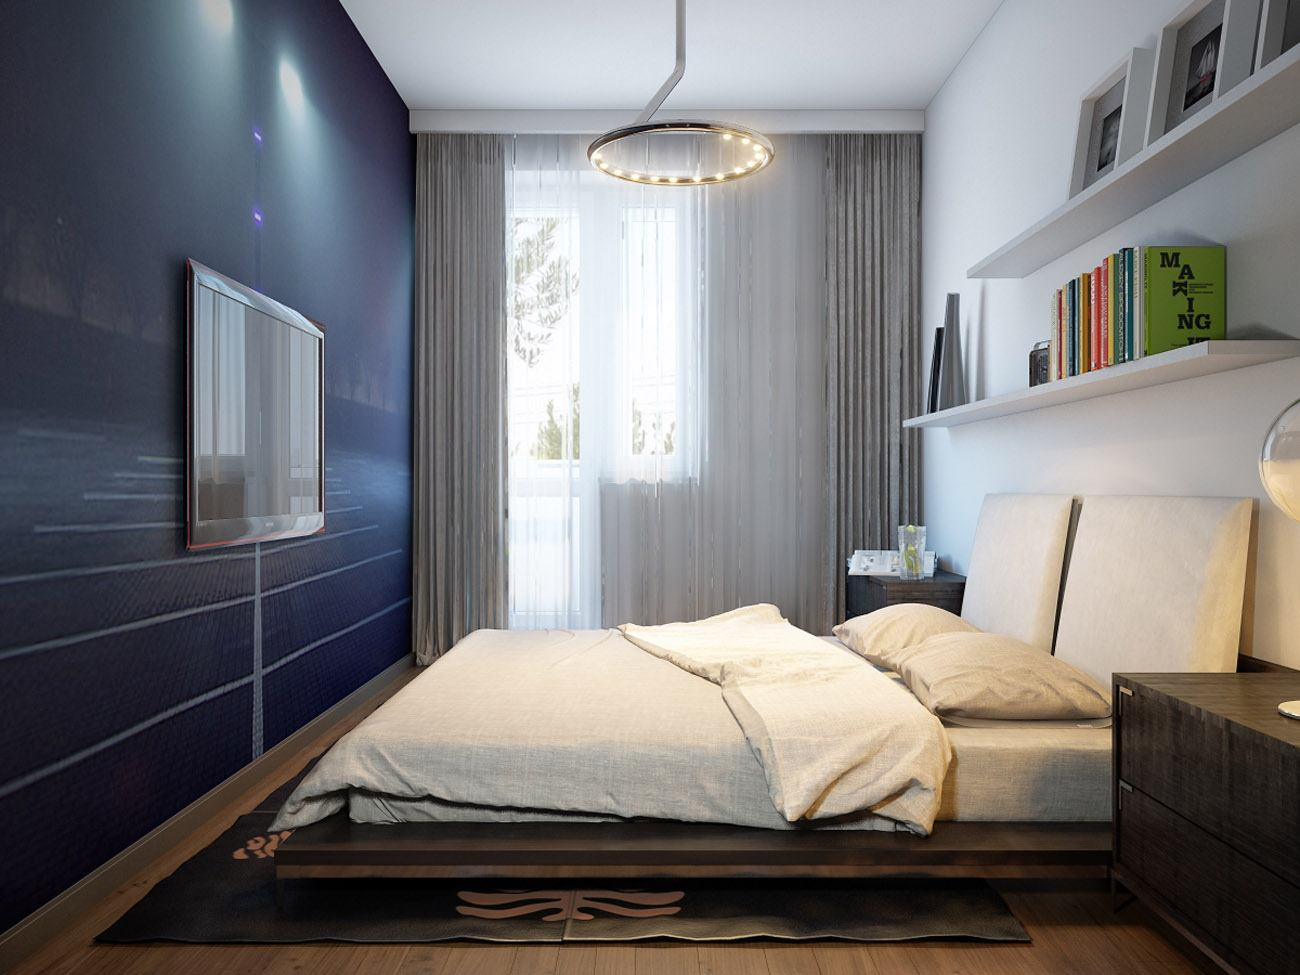 140 Square Feet Bedroom Interior Decoration: Examples for every Budget. Modern decorated area with modular wall